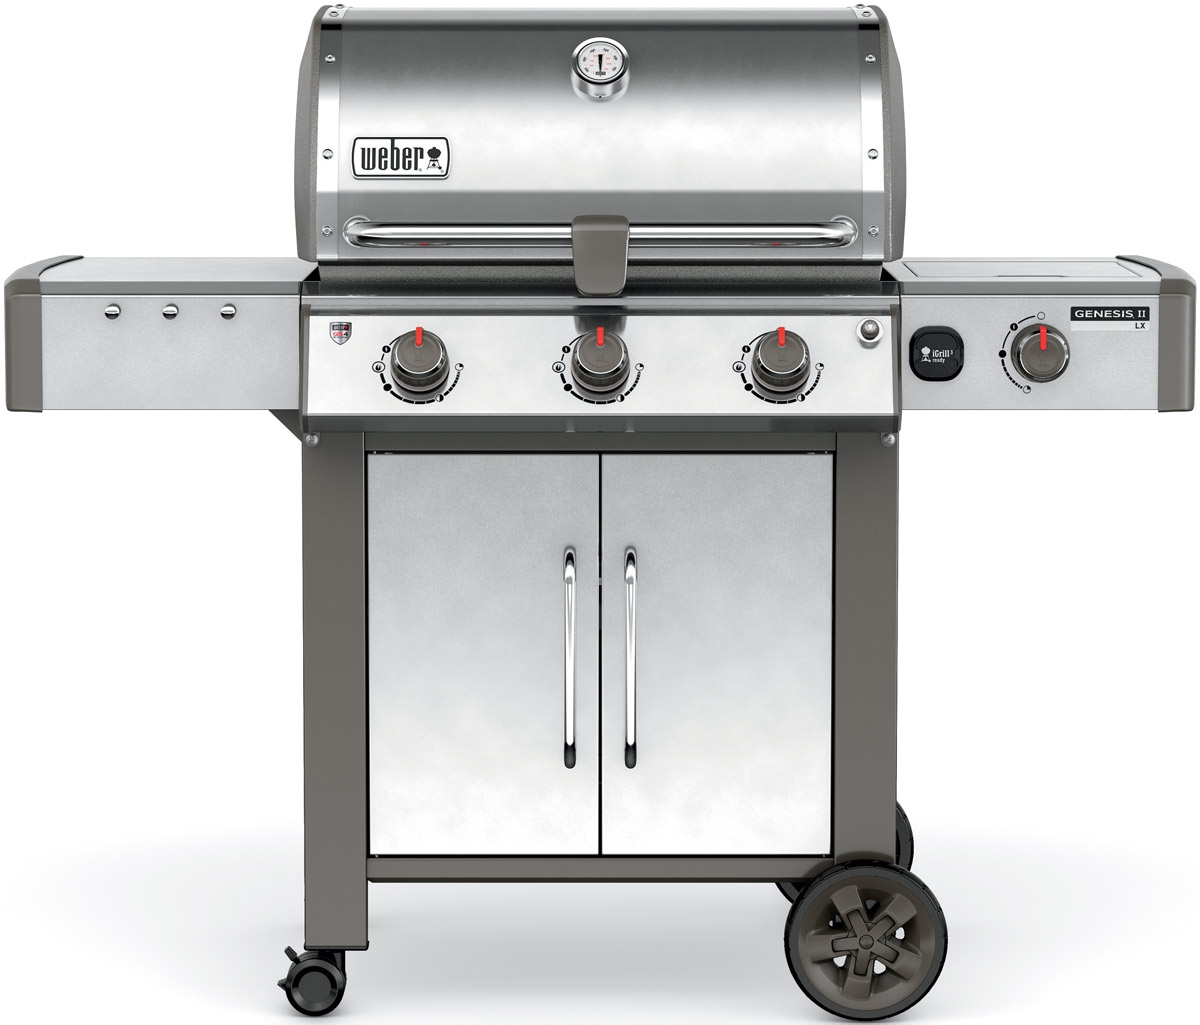 Weber Genesis II LX S-340 Natural Gas Outdoor Grill - 66004001